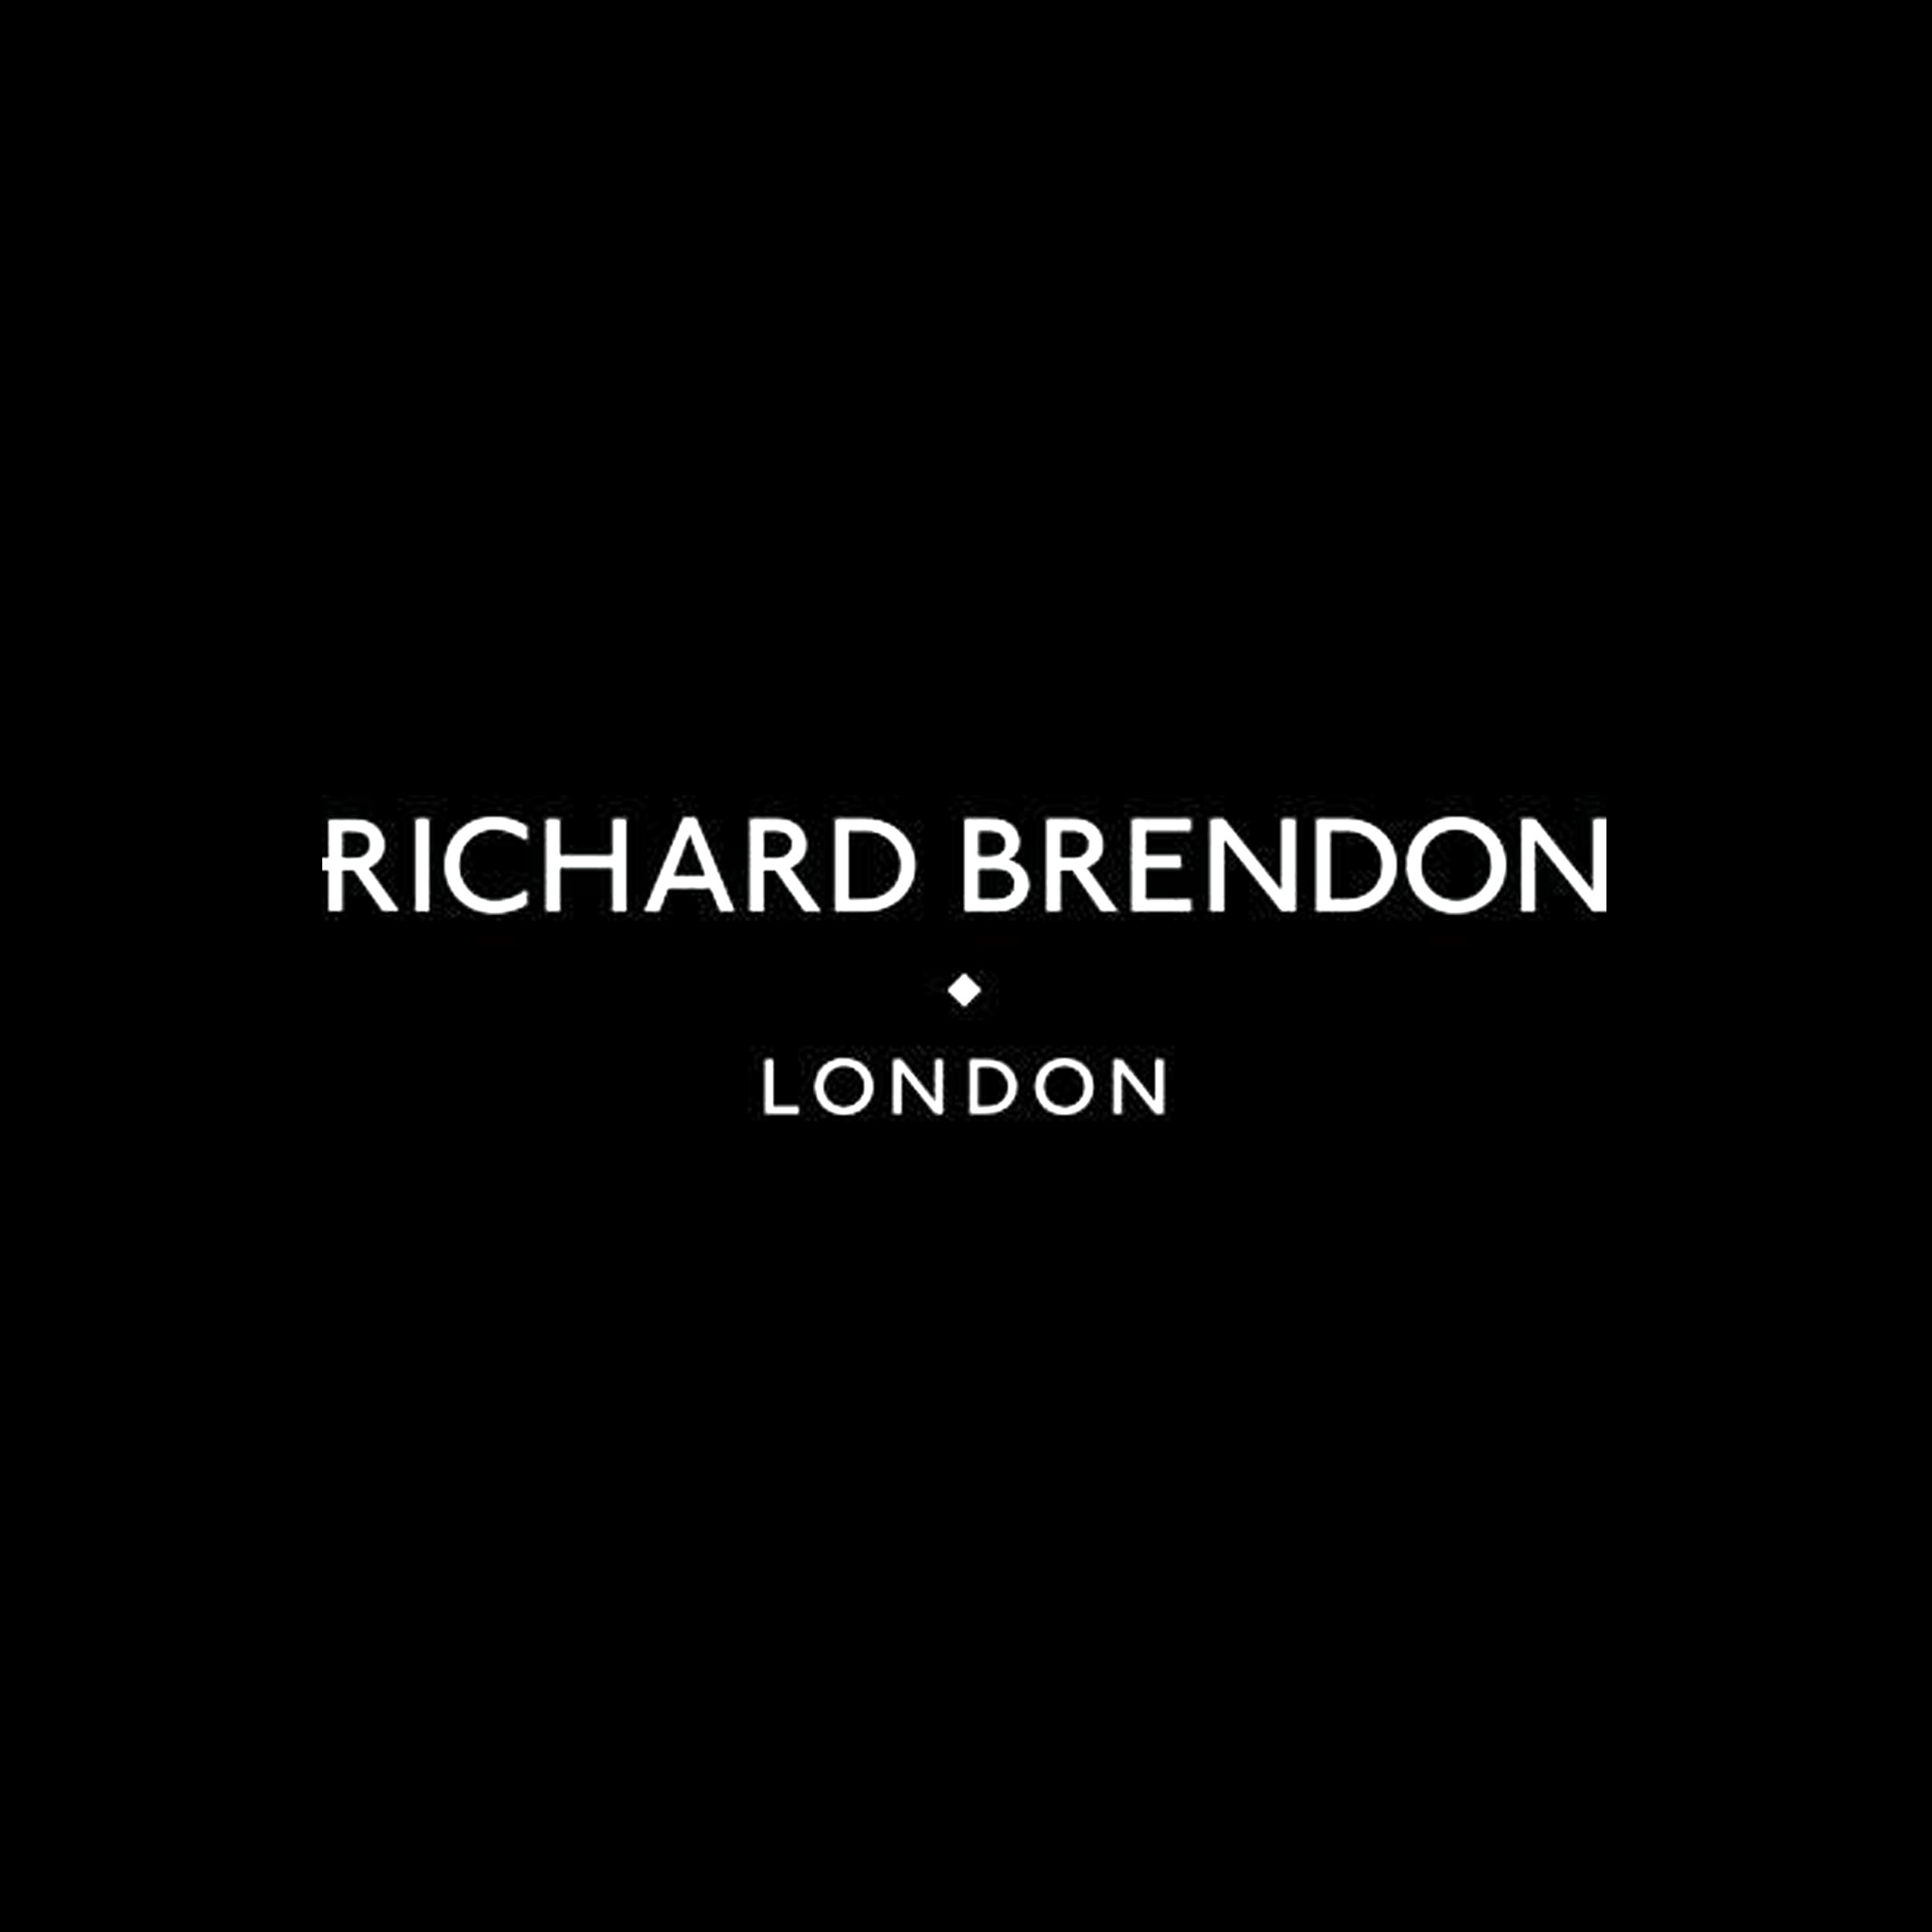 richard Brendon.jpg